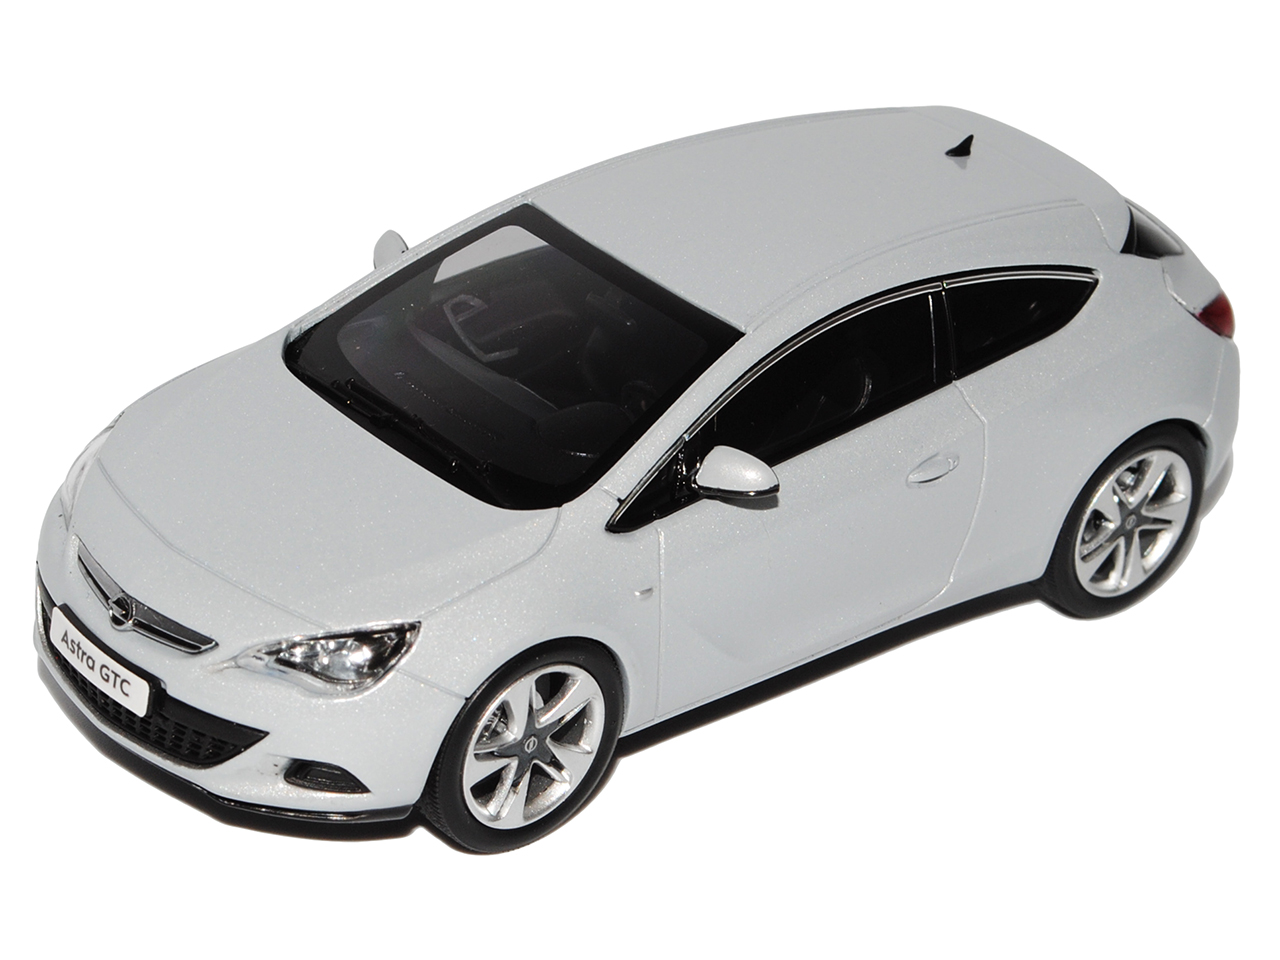 Opel Astra Astra Astra GTC J Ab 2009 Coupe Mineral Weiss silver 1 43 Motorart Modell Auto .. 404d9b